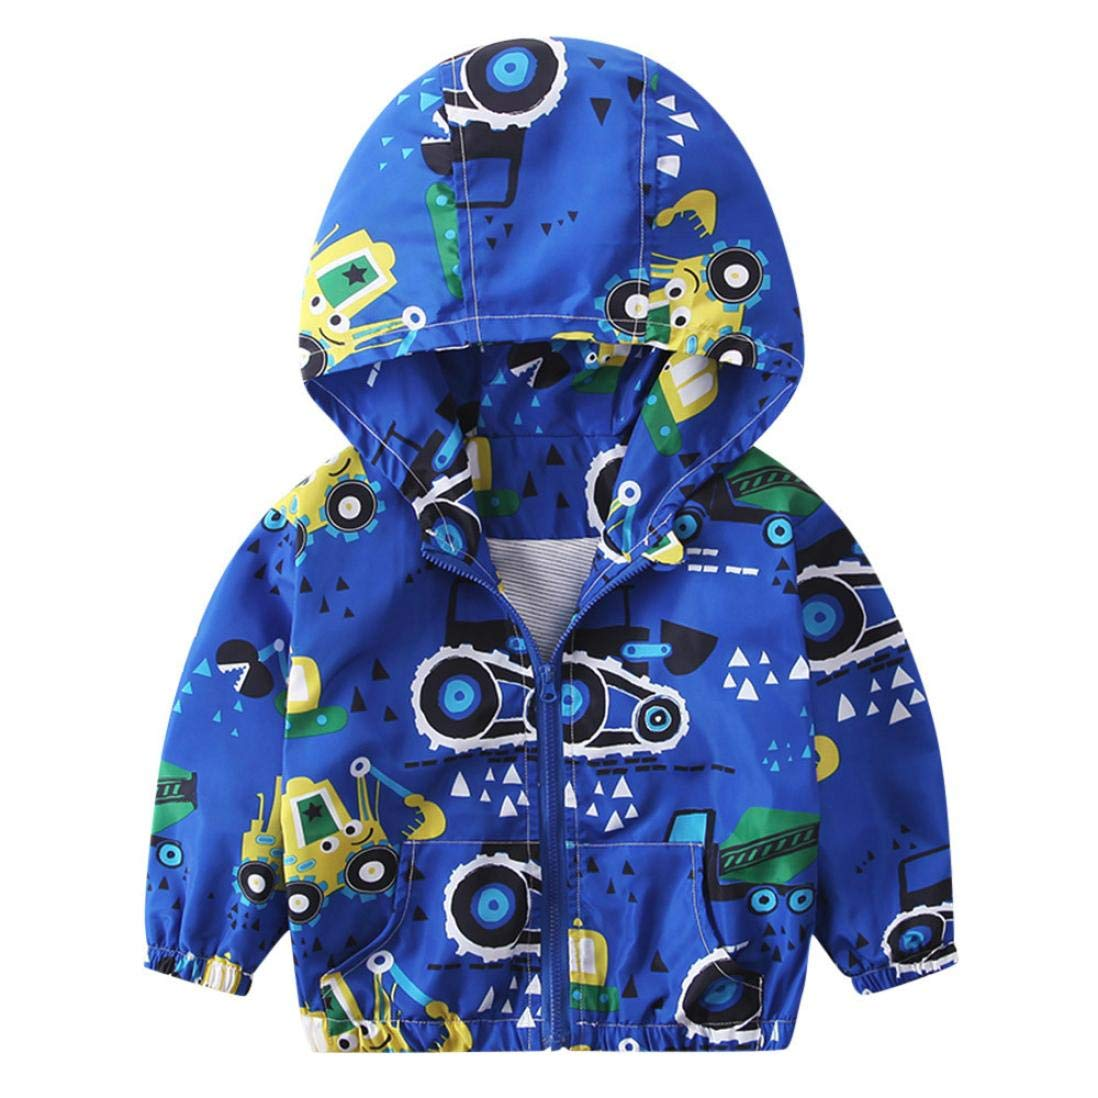 Sameno Children Coat, Kids Girls Boys Baby Dinosaur Hoodie Autumn Jacket Windbreaker Outerwear